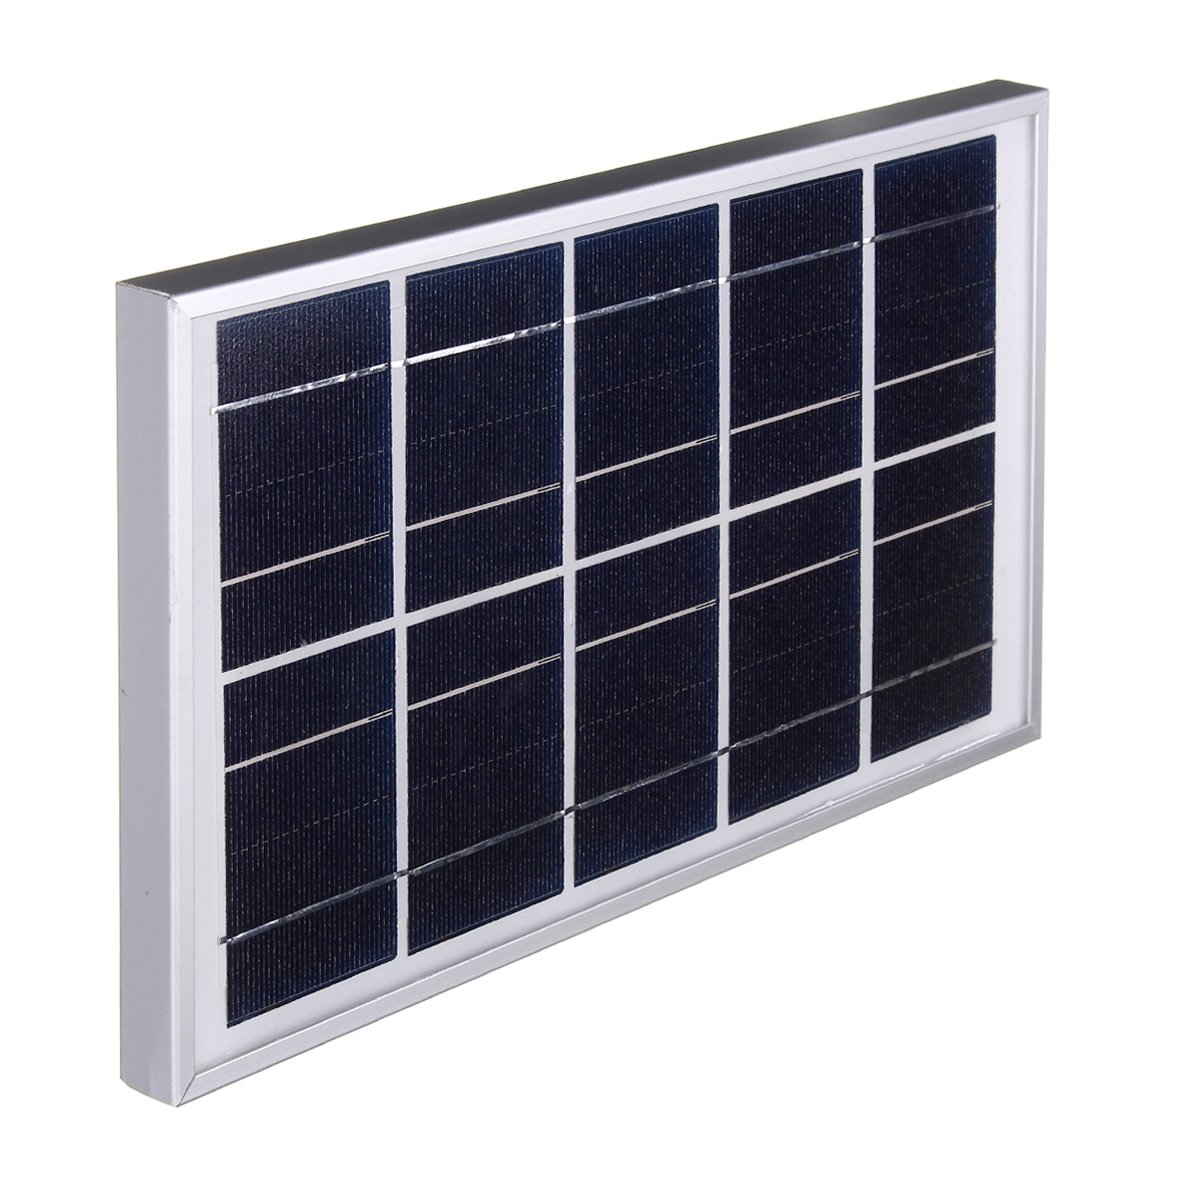 LaDicha 5V 7W Durdable Impermeable Policristalino Solar Panel ...